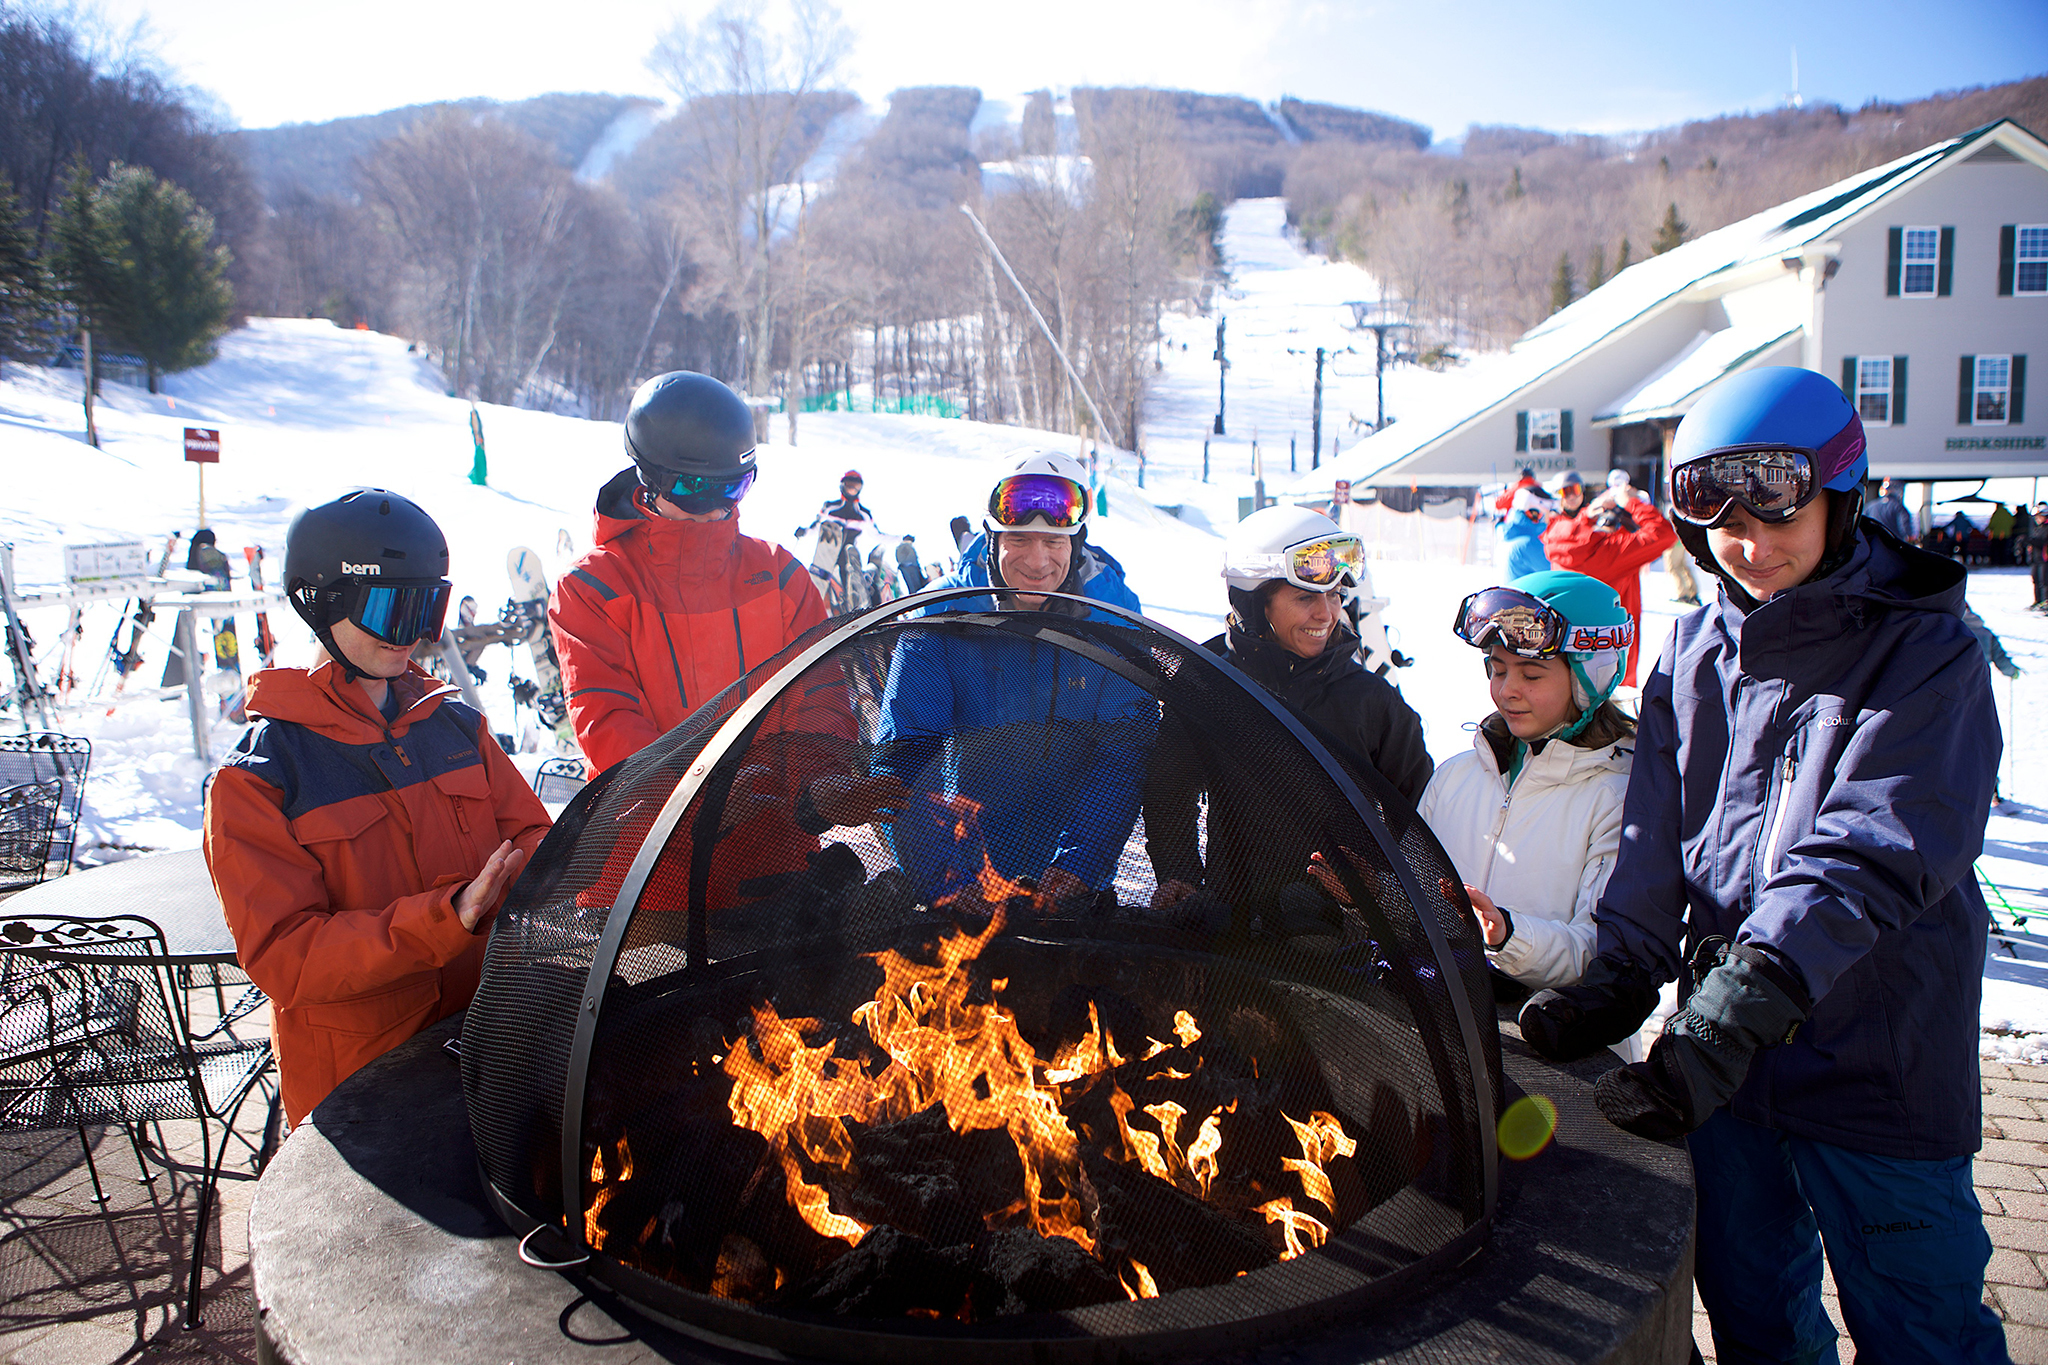 15 best ski resorts near nyc for a winter getaway